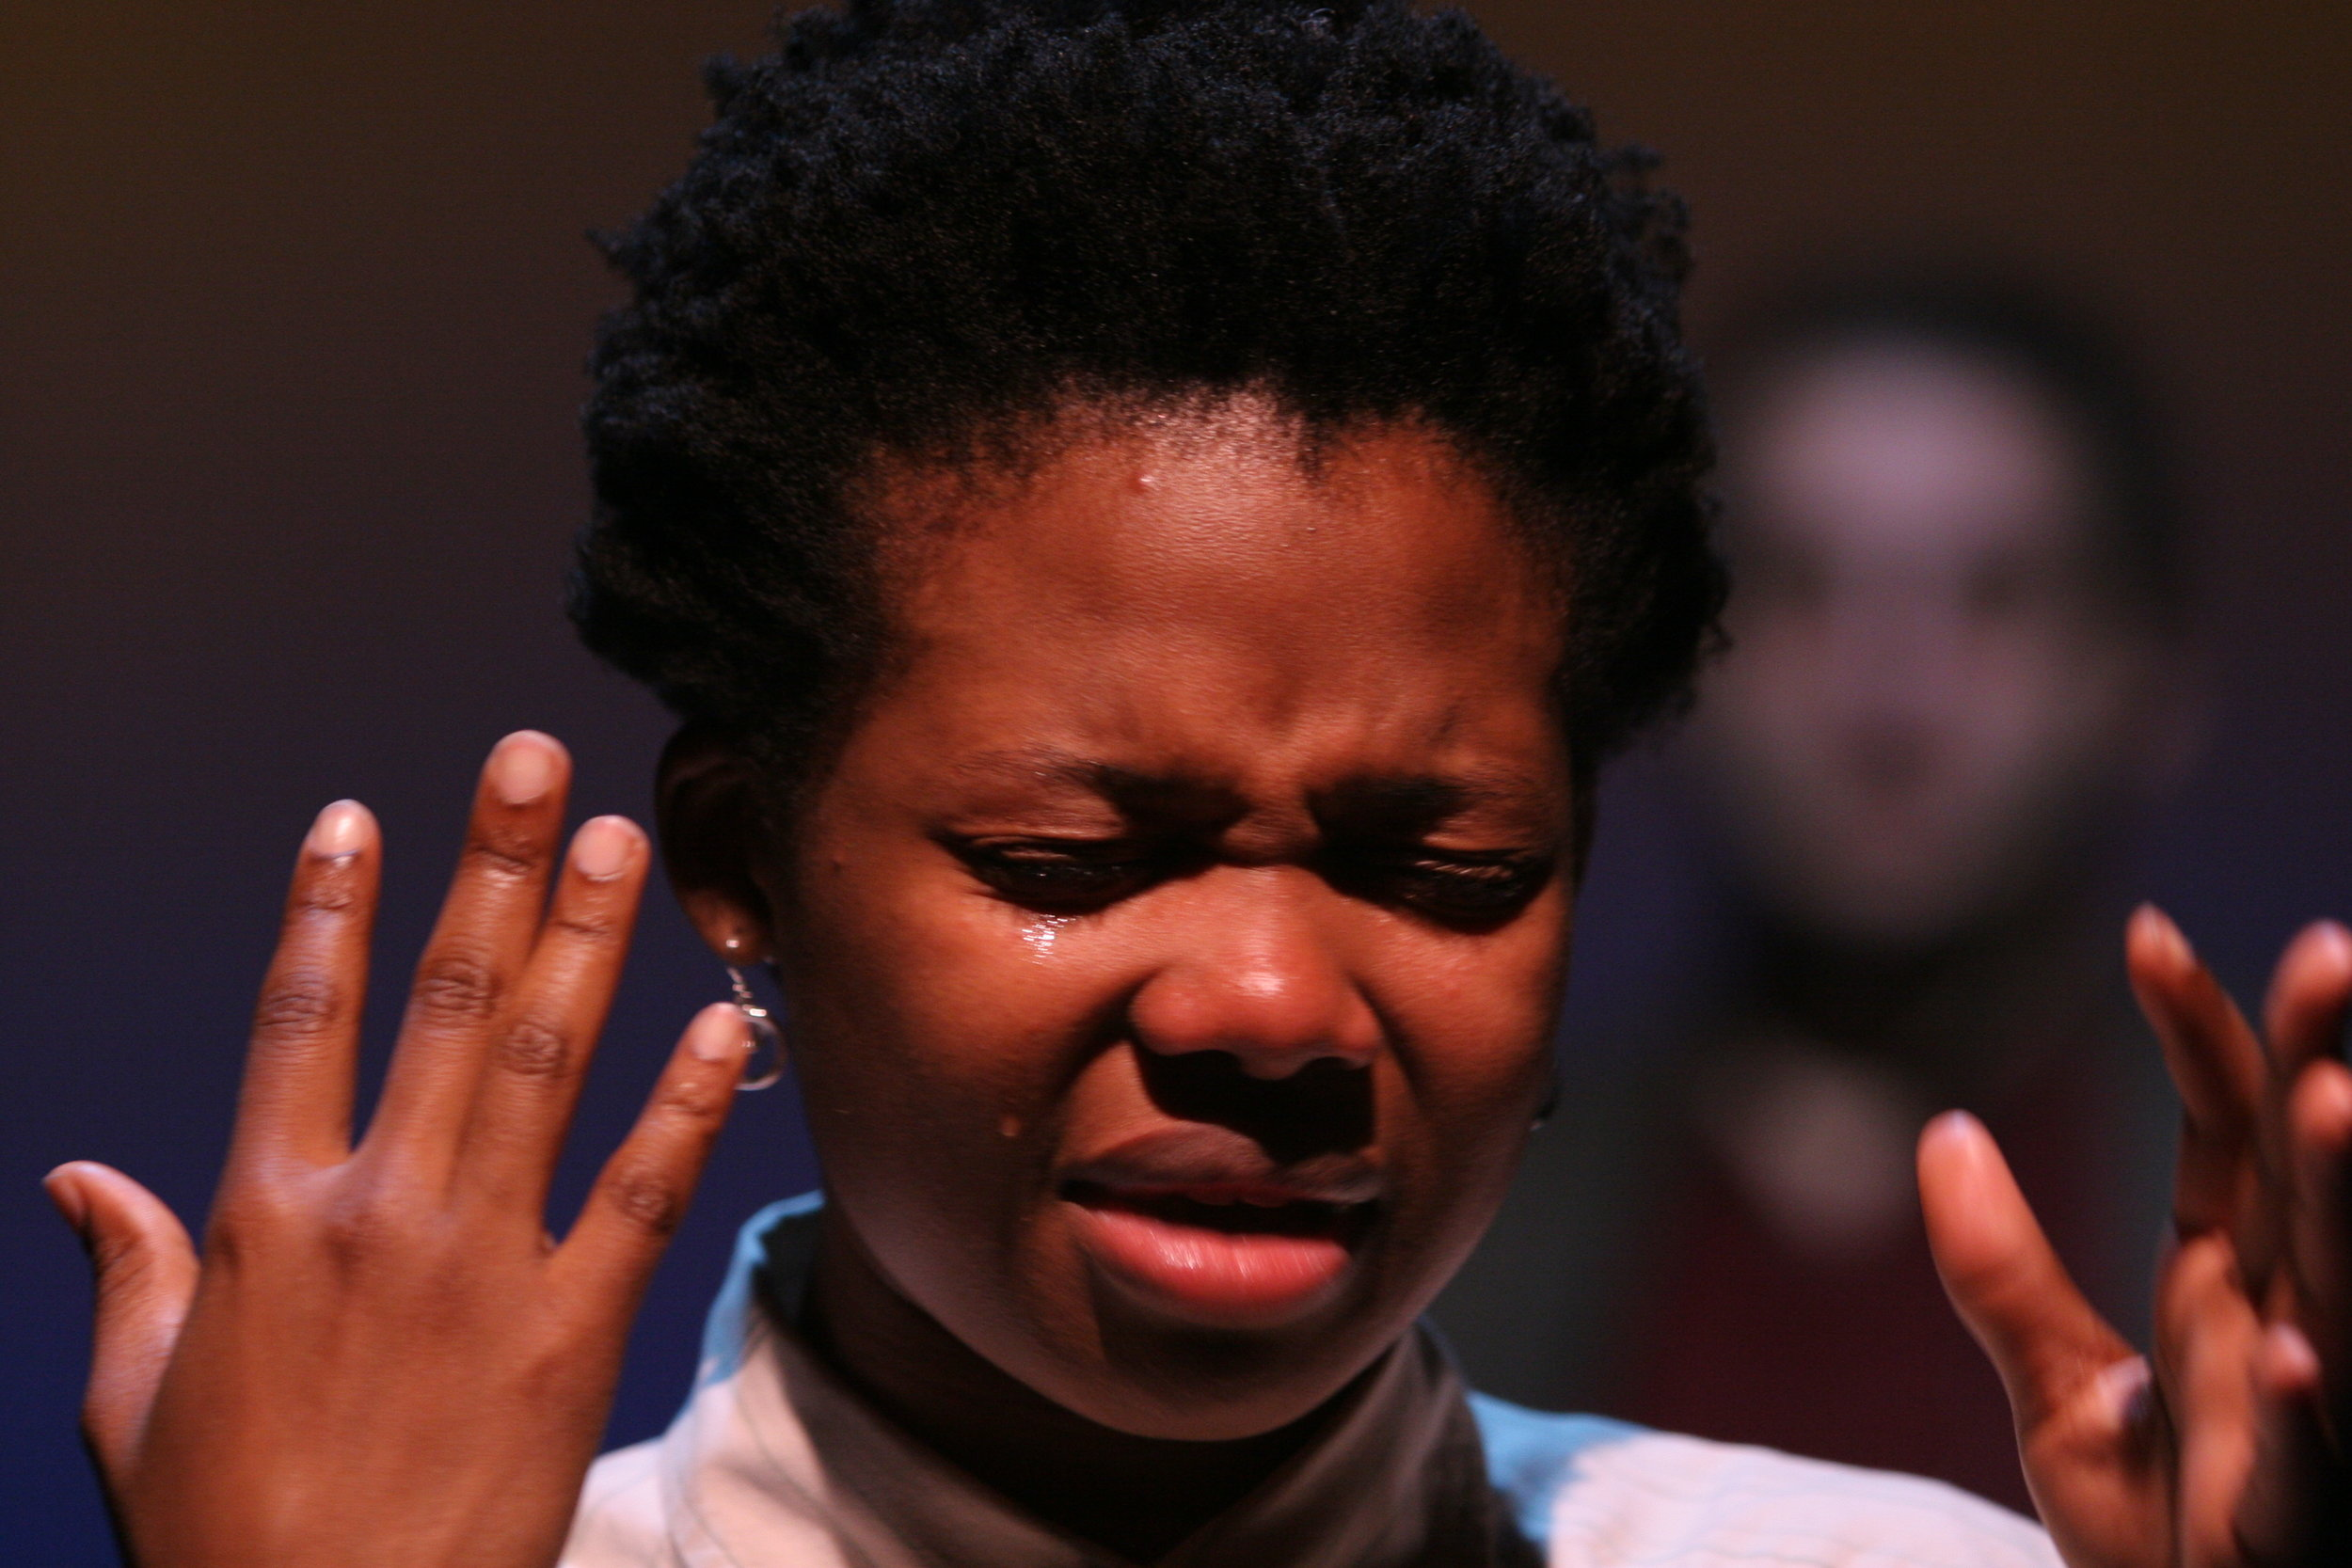 The Duchess of Malfi by John Webster - Women & Patriarchy Readings